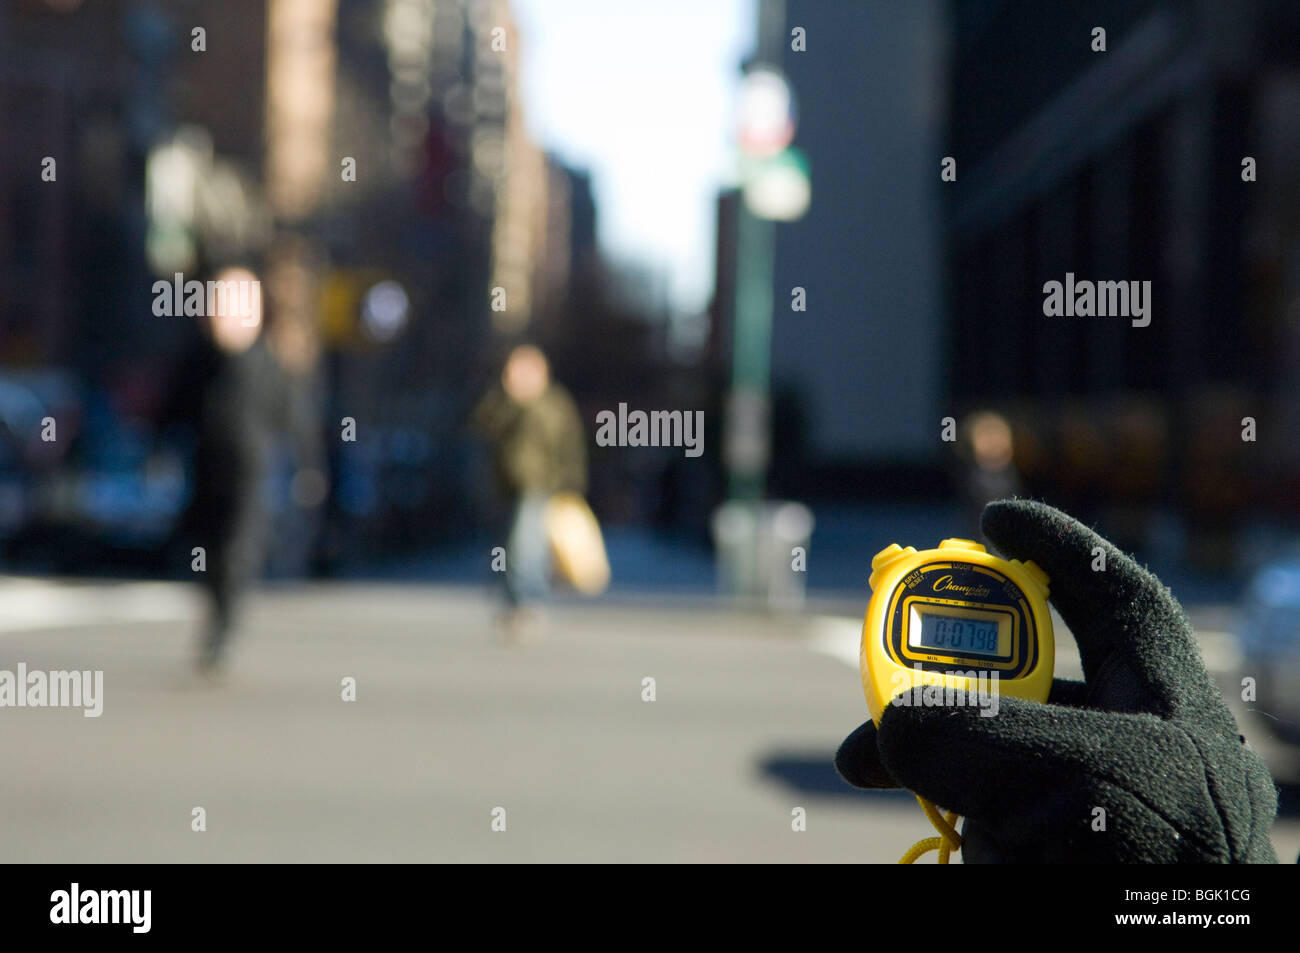 AARP volunteers survey the intersection of Third Avenue and 49th street for safety for older pedestrians - Stock Image